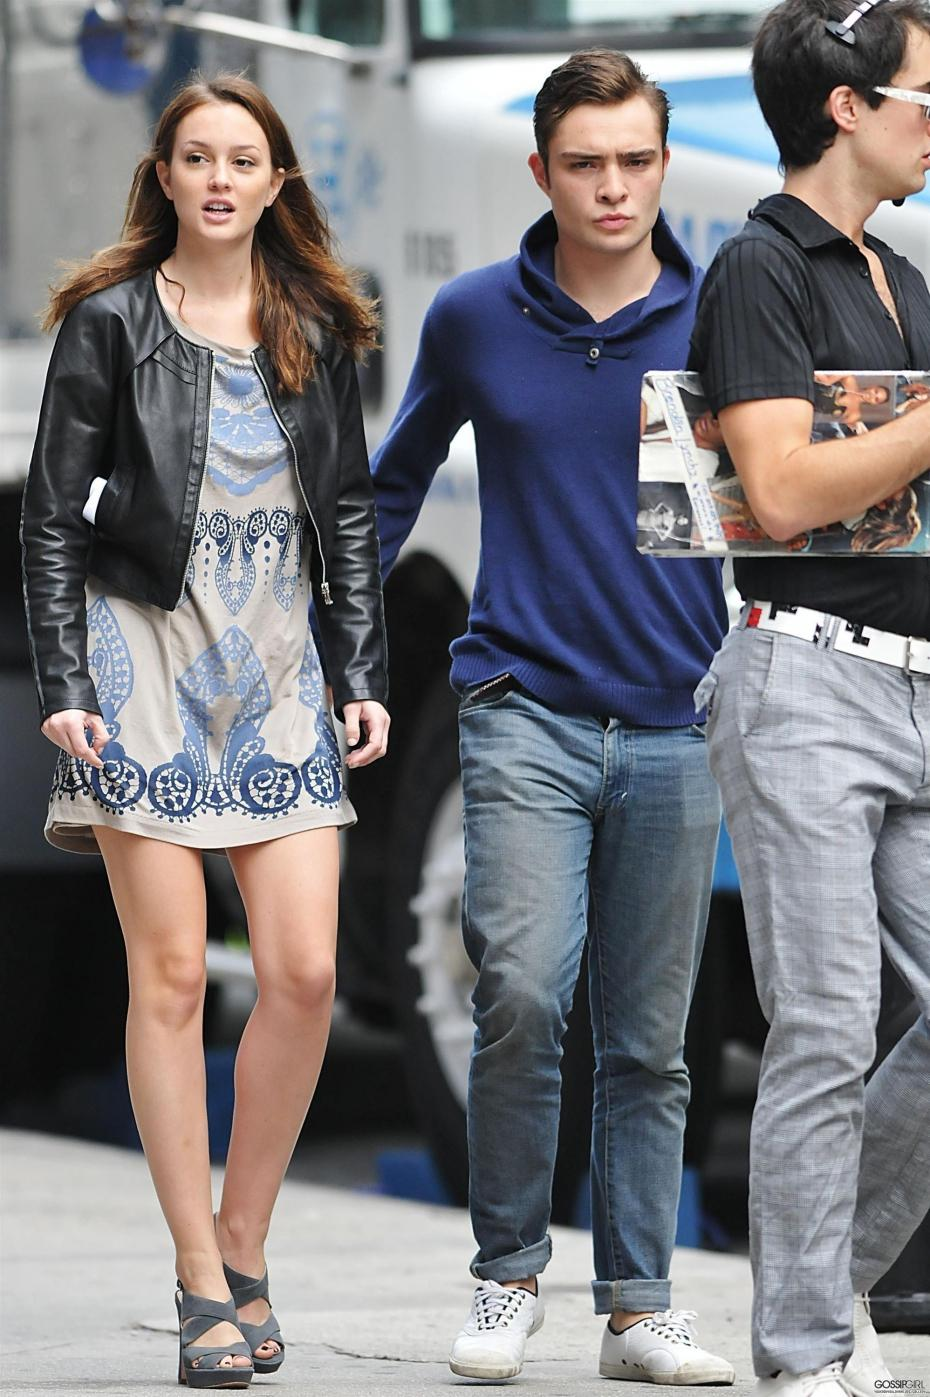 are ed westwick and leighton meester dating 2013